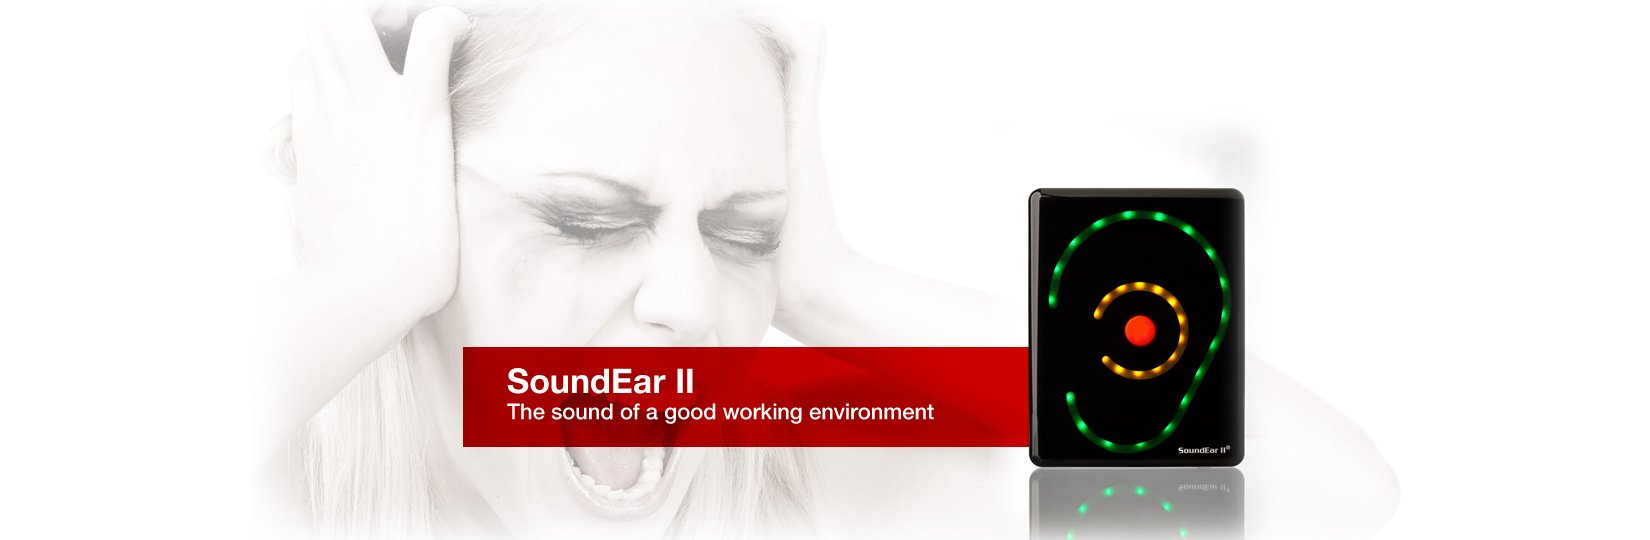 SoundEar 2 Noise Level Monitor